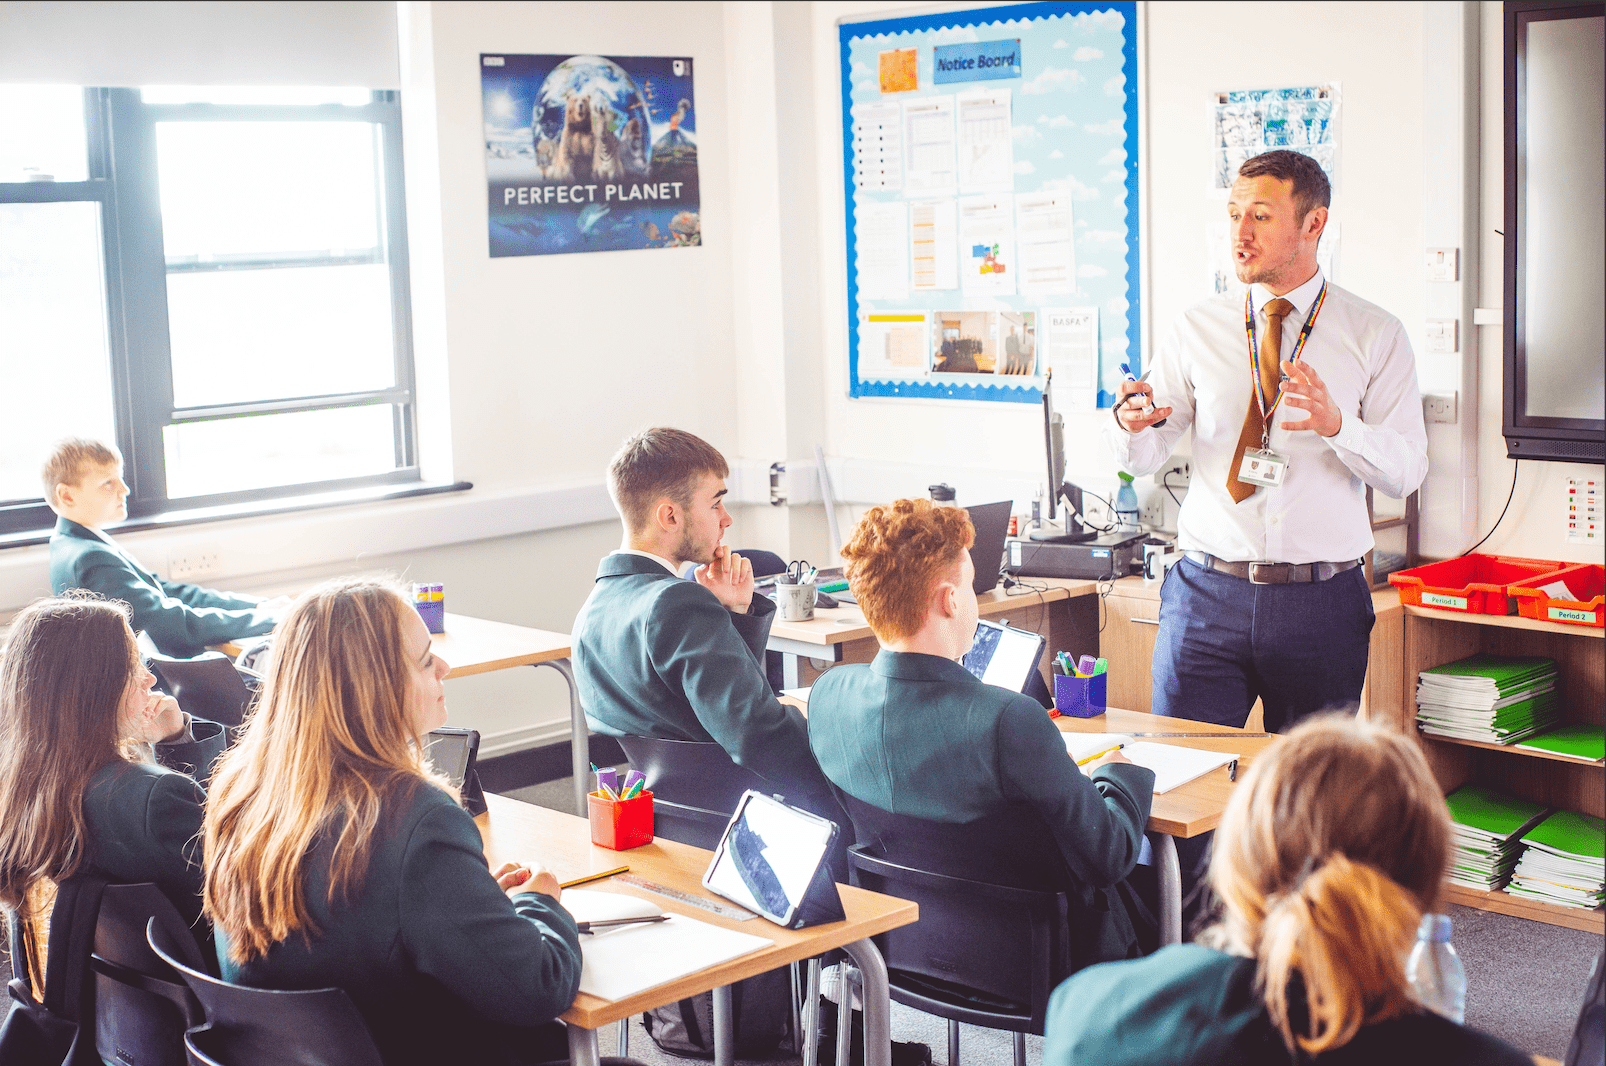 A teacher talking to a class full of students.